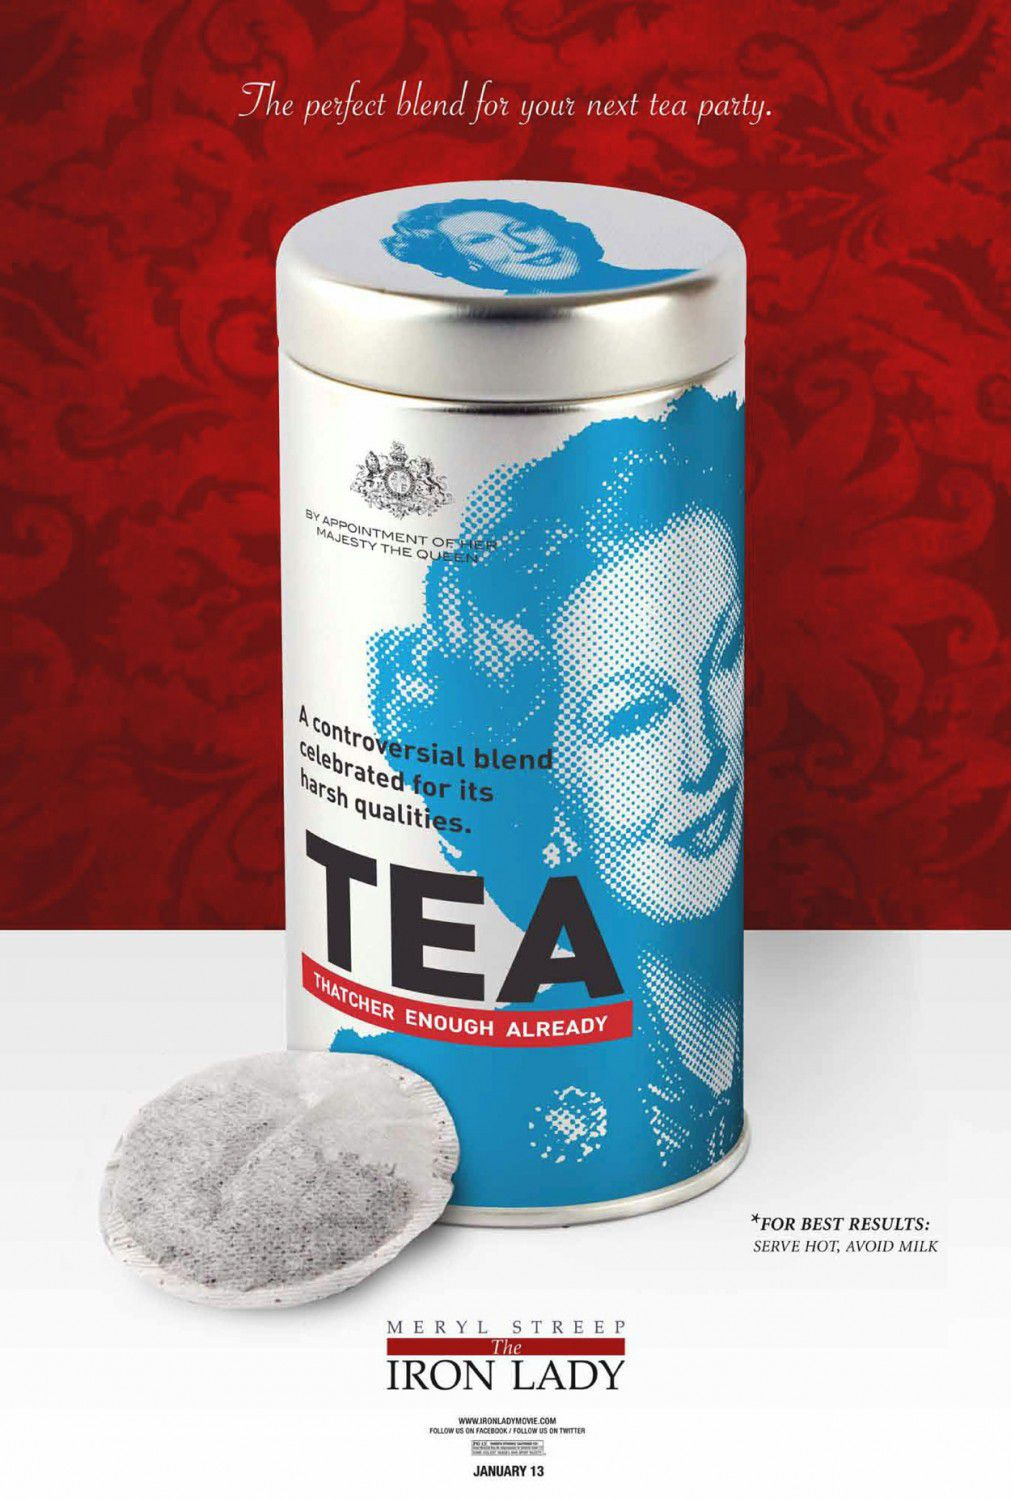 Iron Lady - poster - Meryl Streep - The perfect blend for your next Tea Party - TEA Thatcher enough already